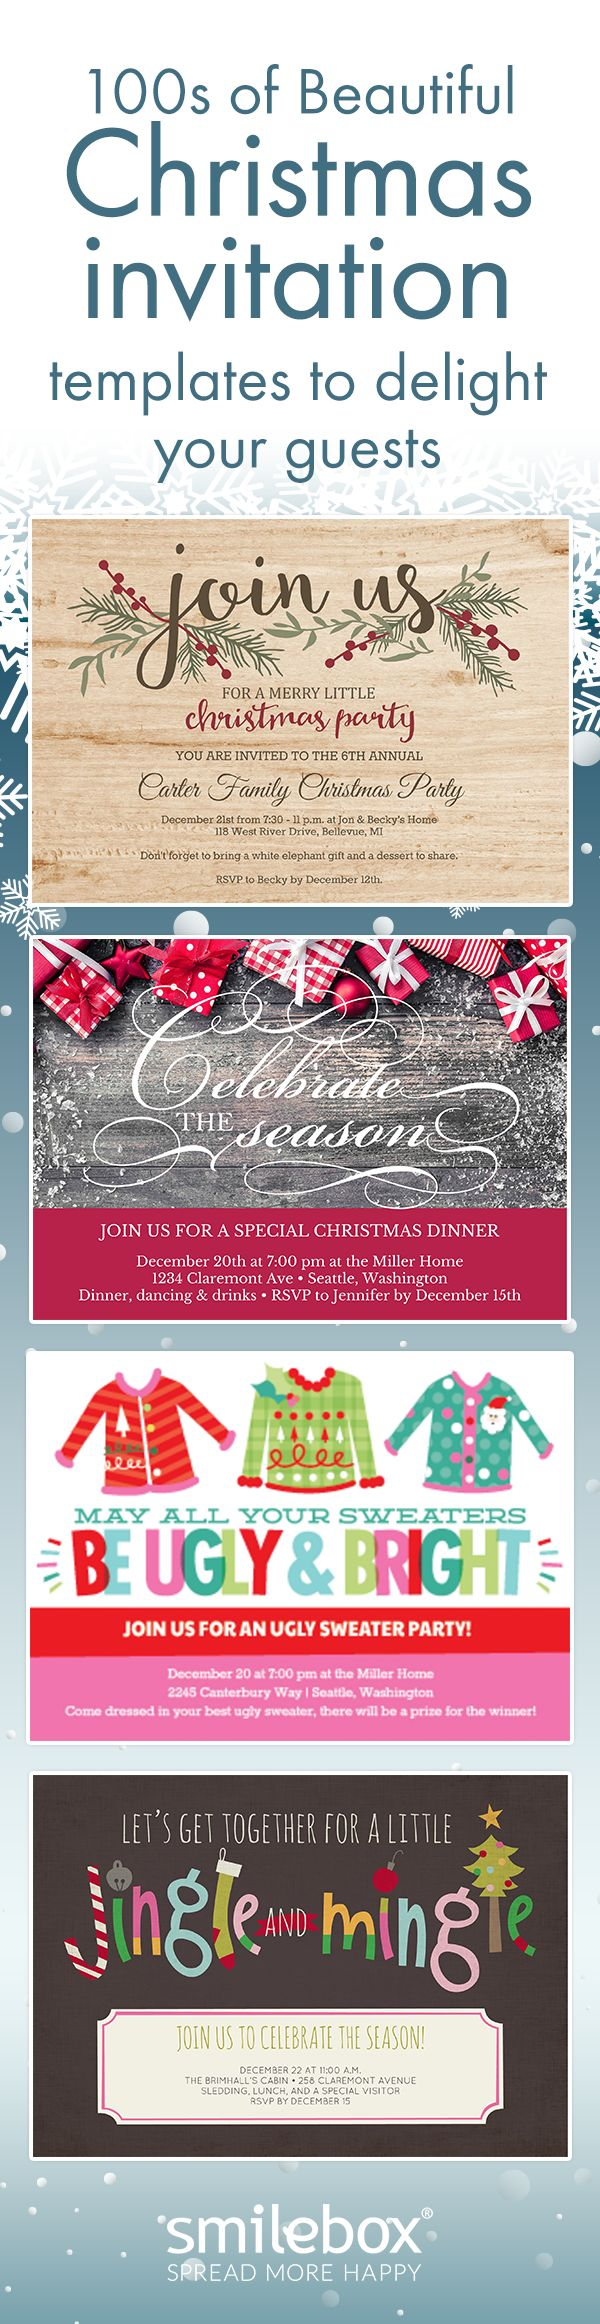 Delight guests with Christmas invitation templates that set the scene for your best Holiday party yet.  Customized text, photos, and music, bring holiday spirit to the entire family!